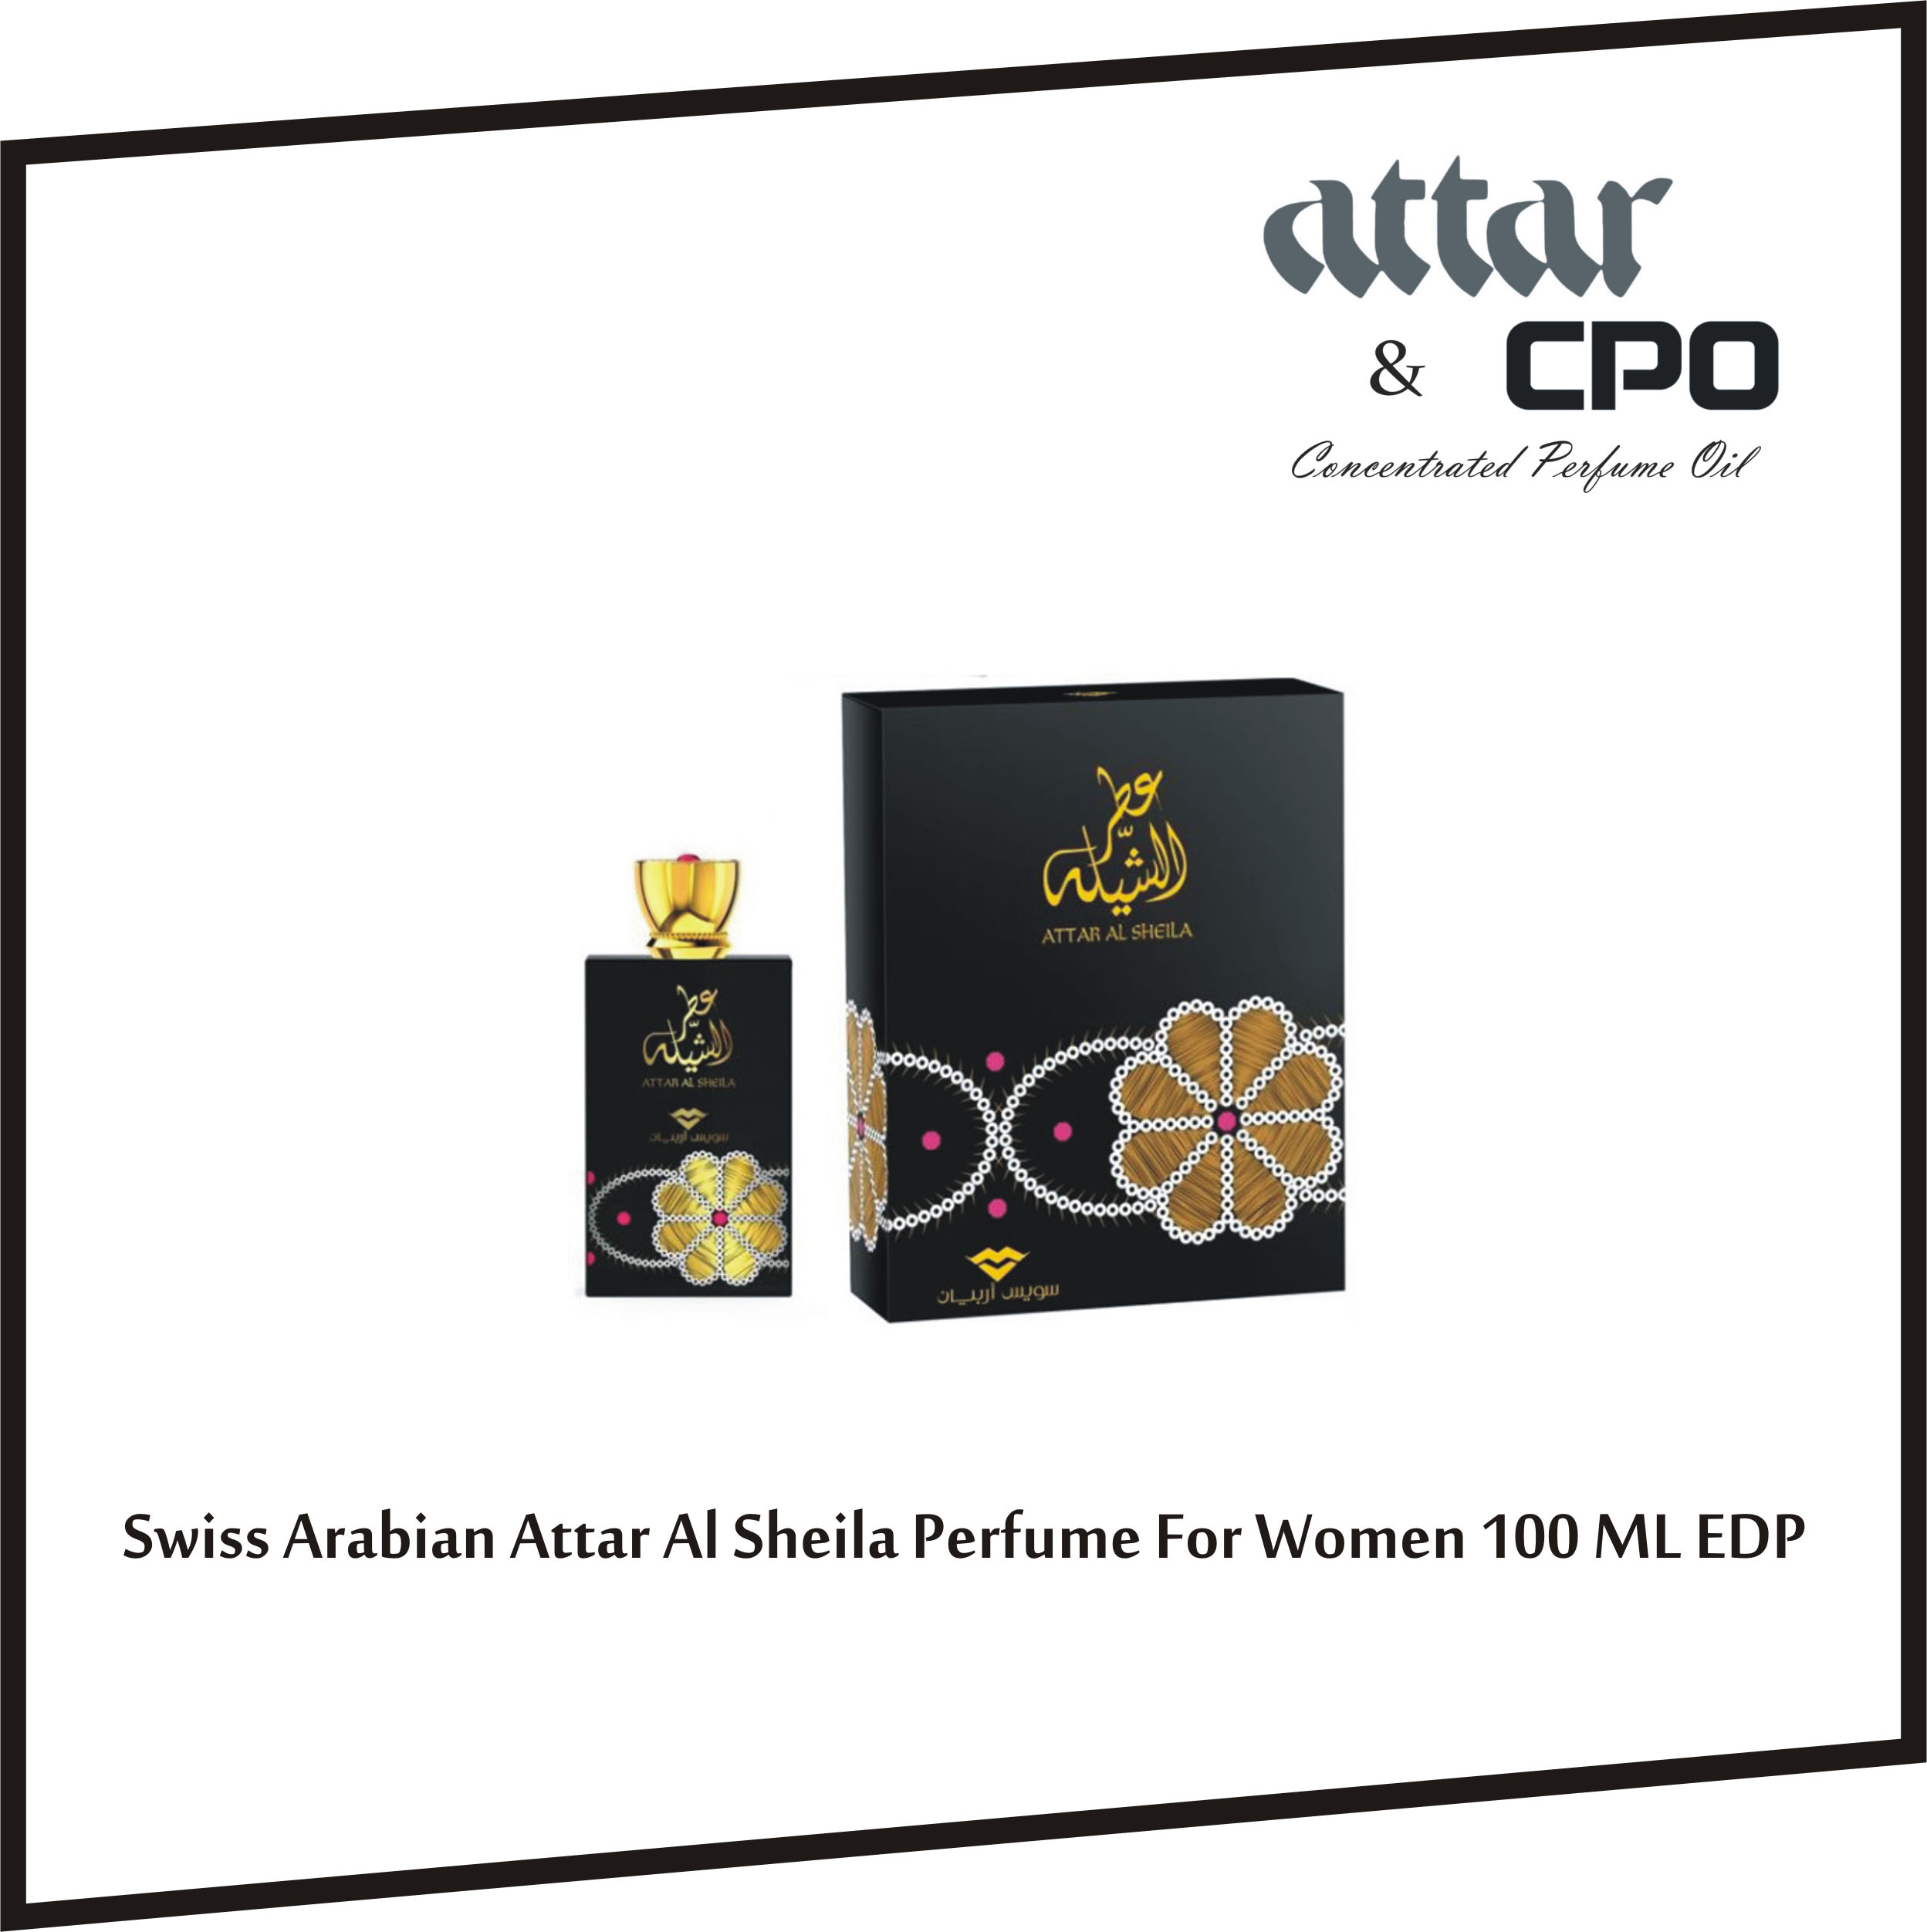 swiss-arabian-attar-al-sheila-perfume-for-women